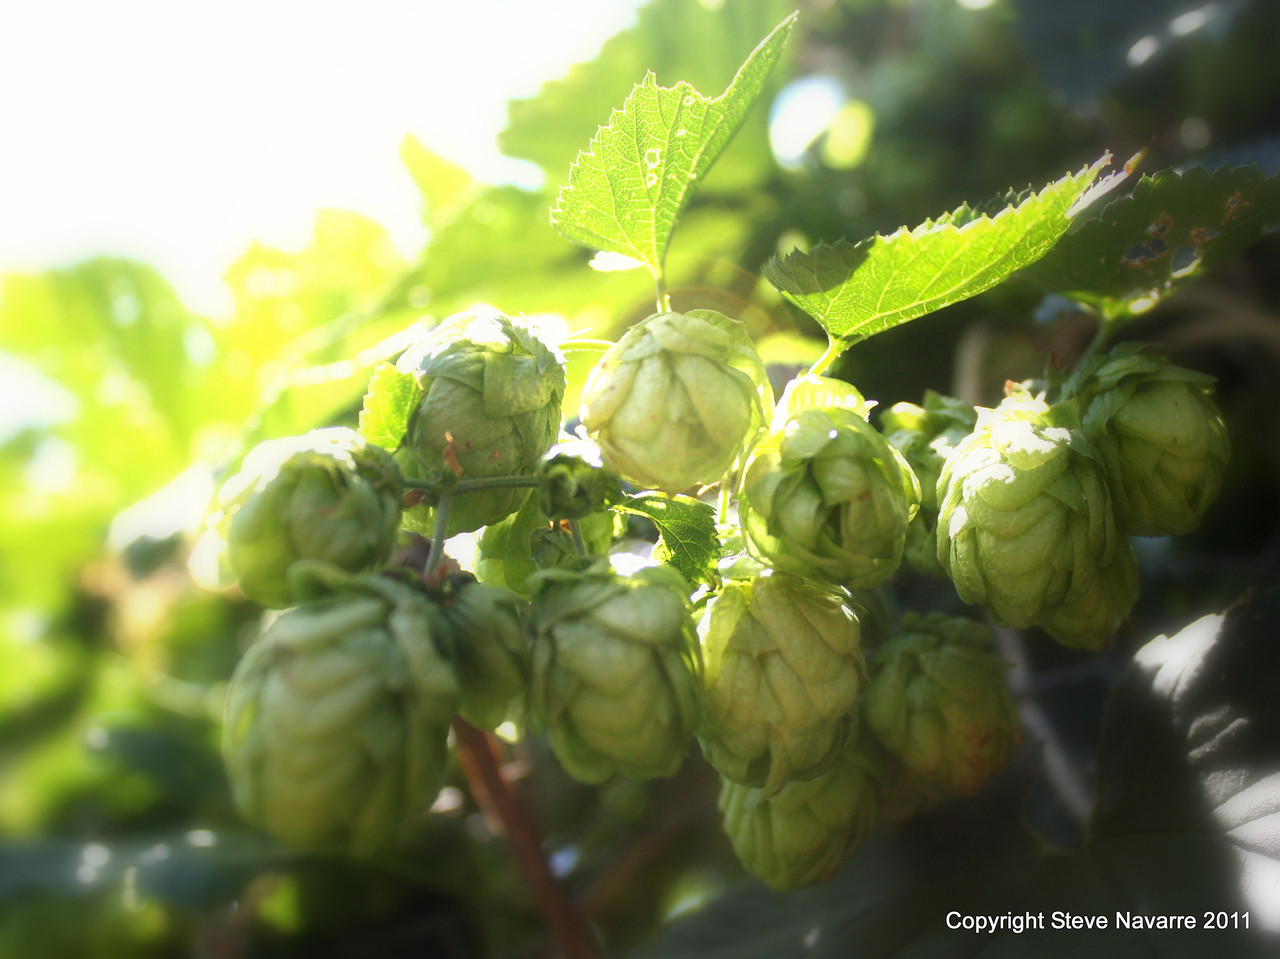 Another nice little cluster of hops